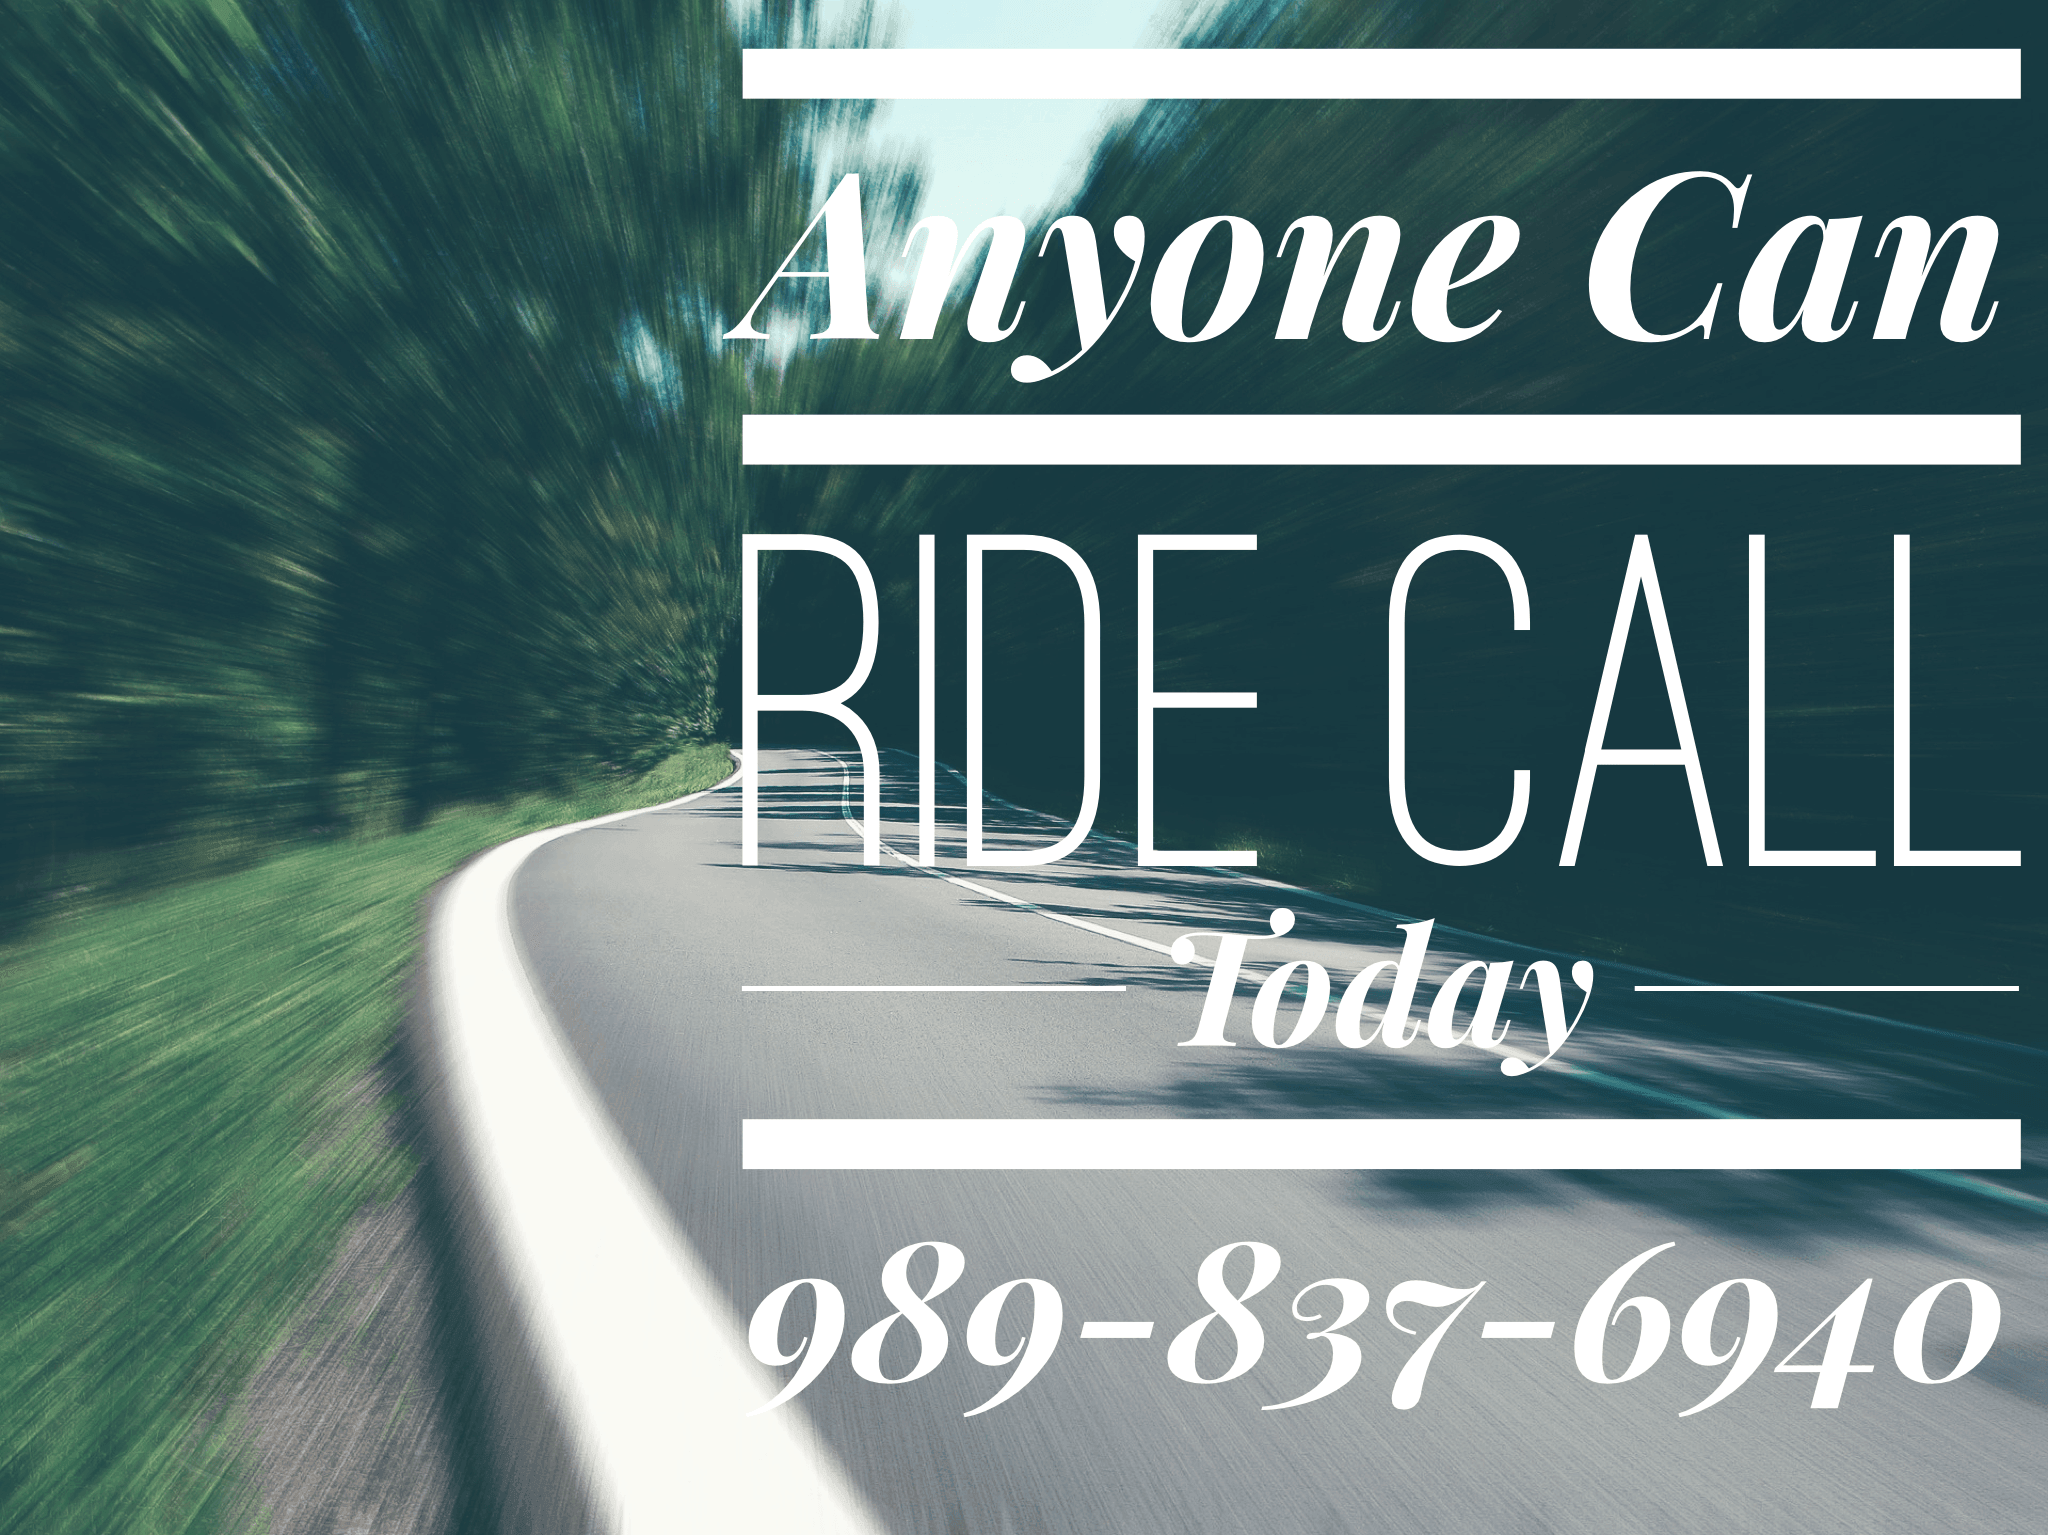 Anyone can ride call today 989-837-6940